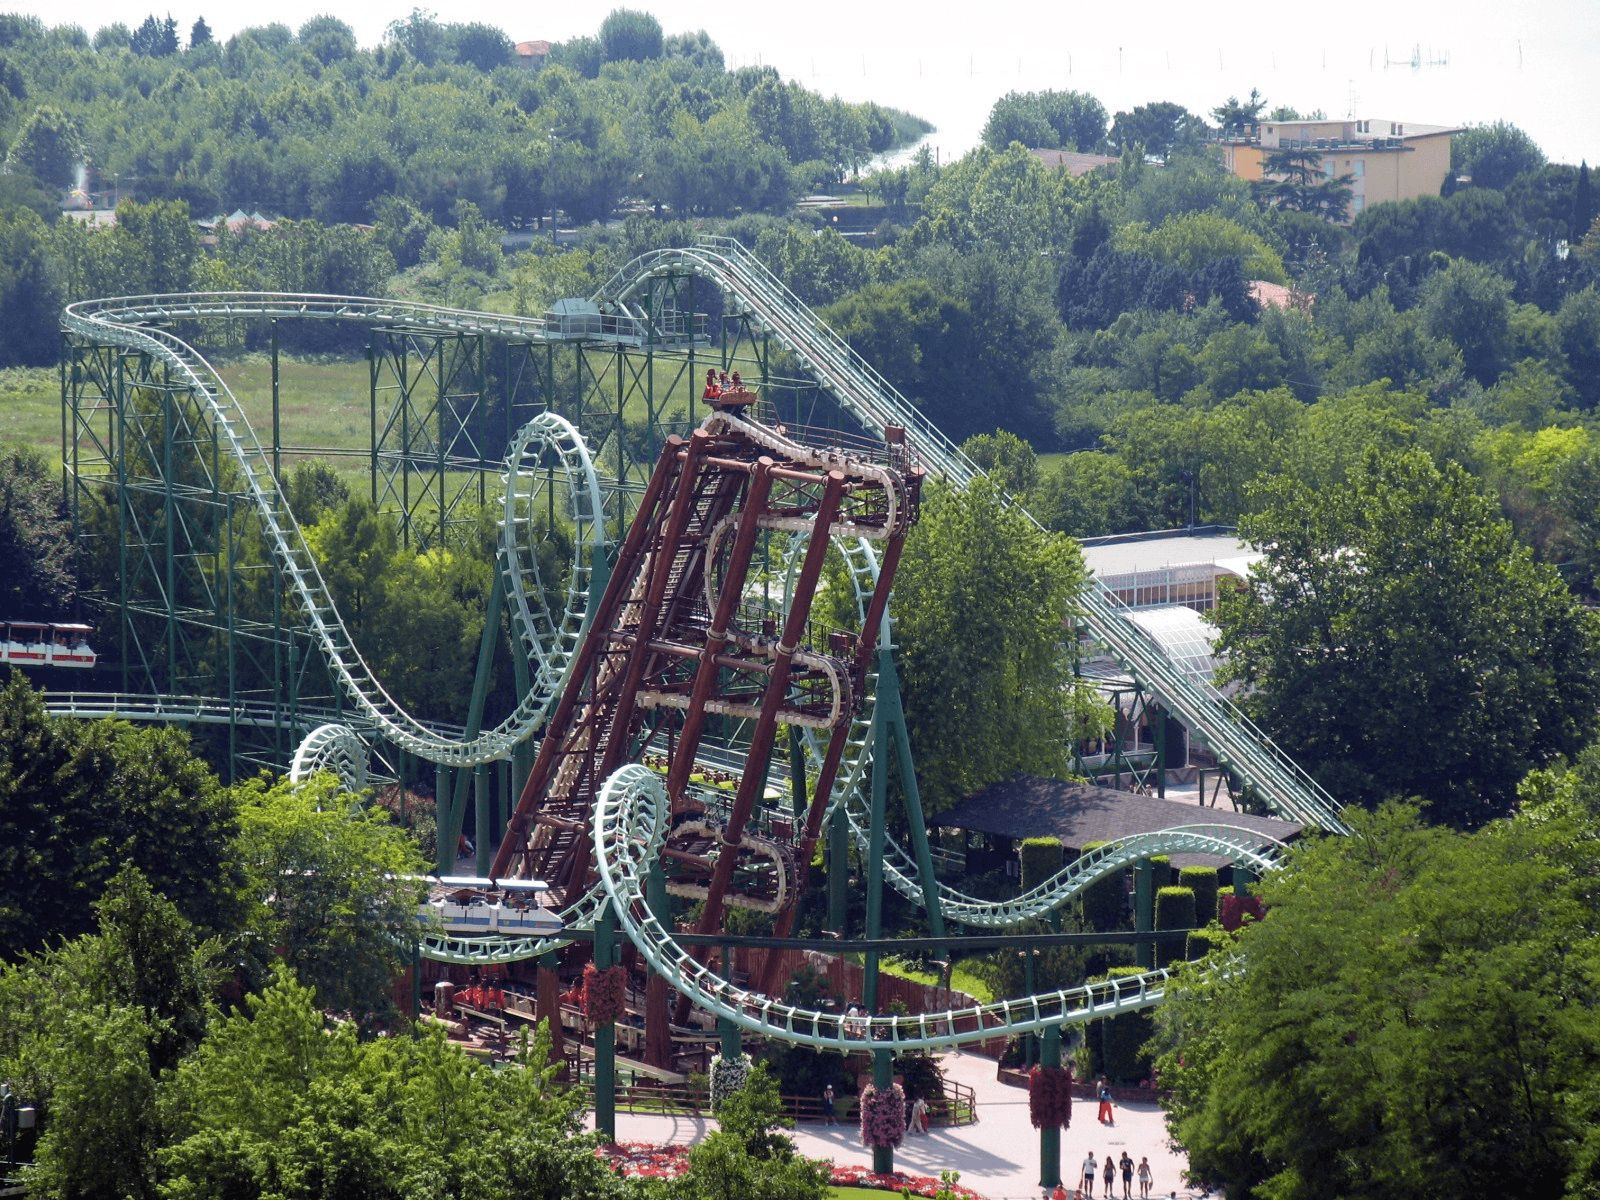 Gardaland: Gardaland: Magic mountain